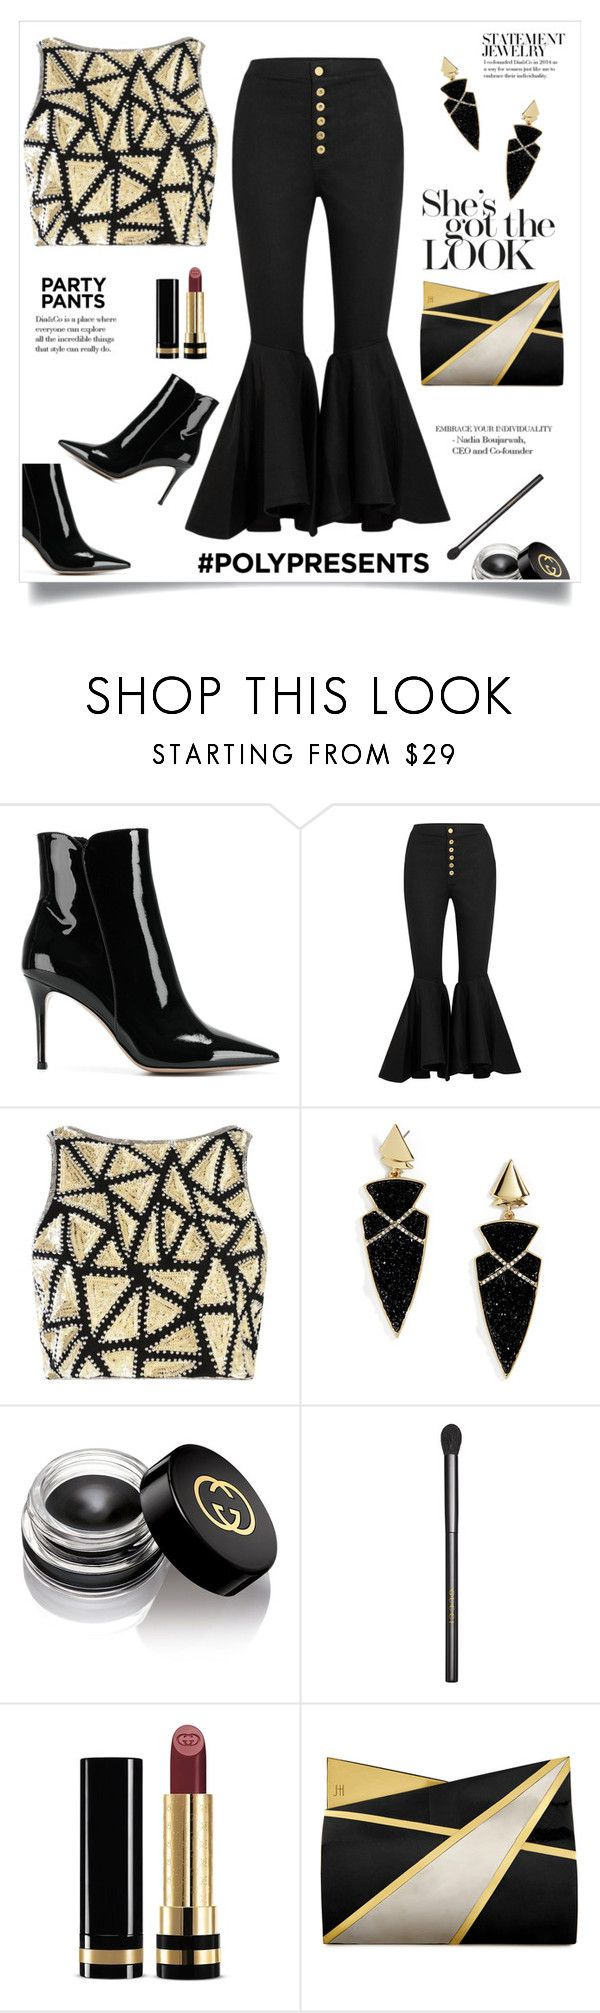 """""""She's Got The Look!"""" by diane1234 ❤ liked on Polyvore featuring Gianvito Rossi, E L L E R Y, Boohoo, BaubleBar, Mor, Gucci and Jill Haber"""